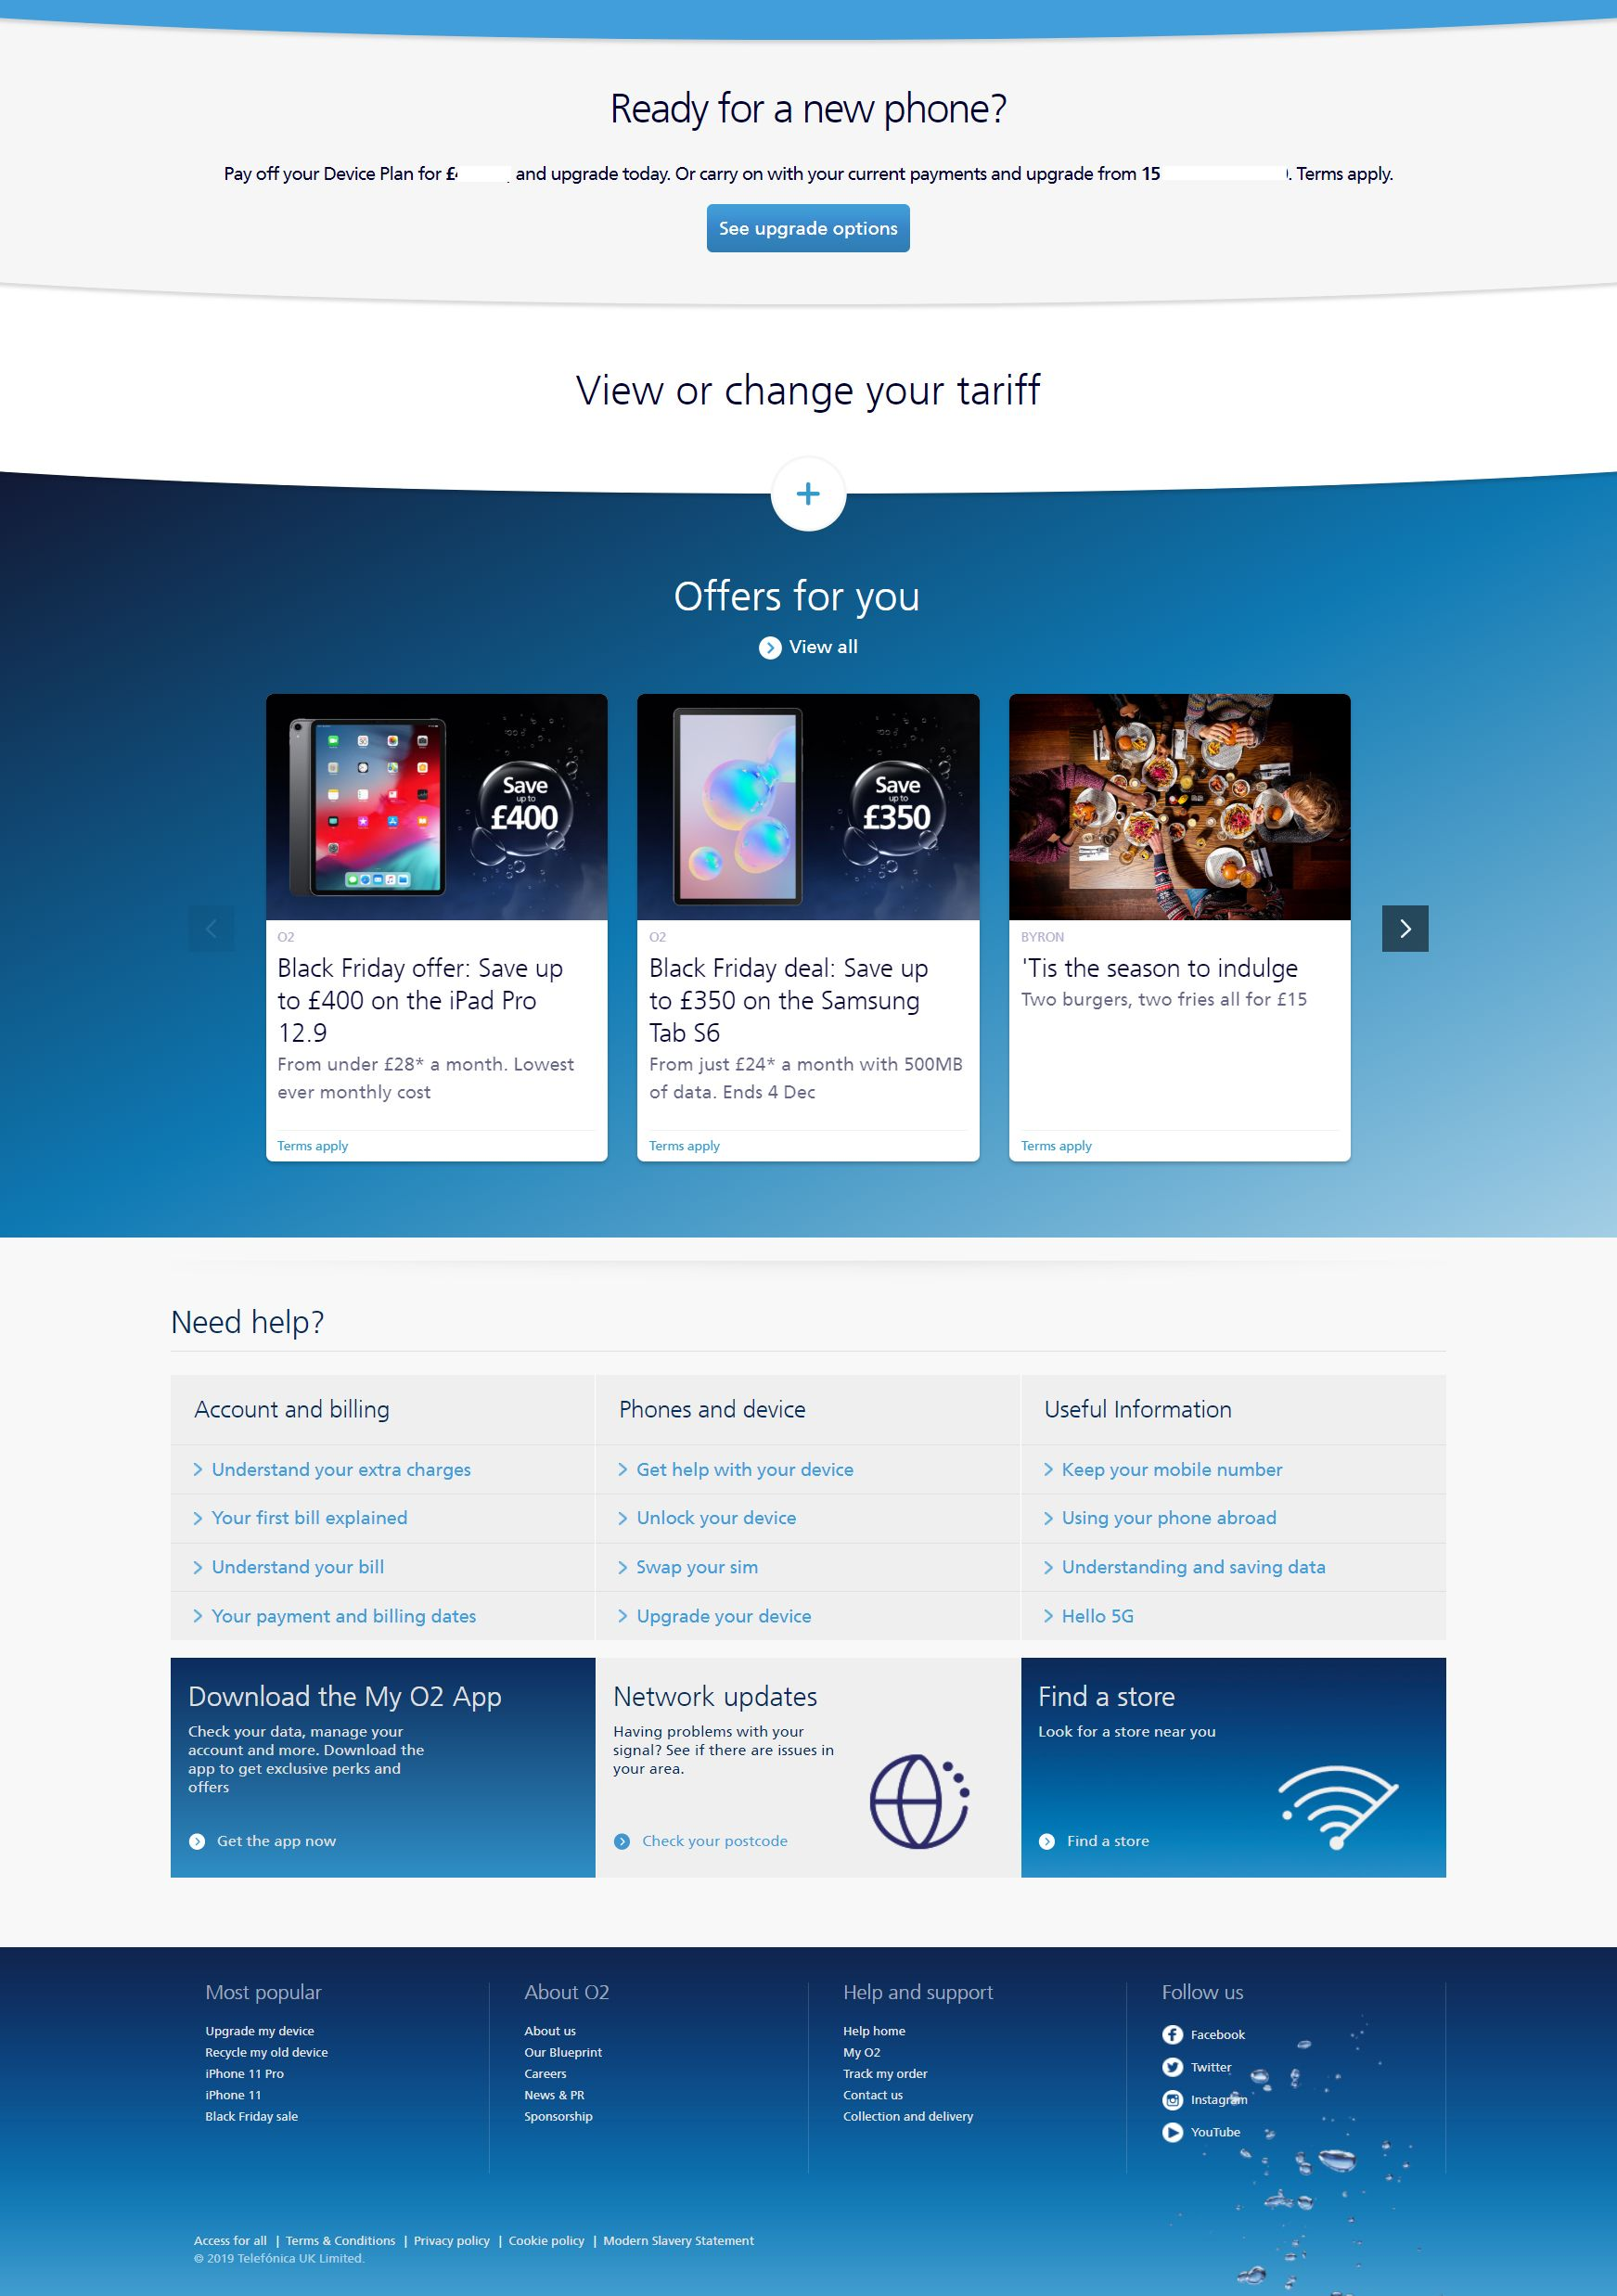 My O2 web version, bottom of the page